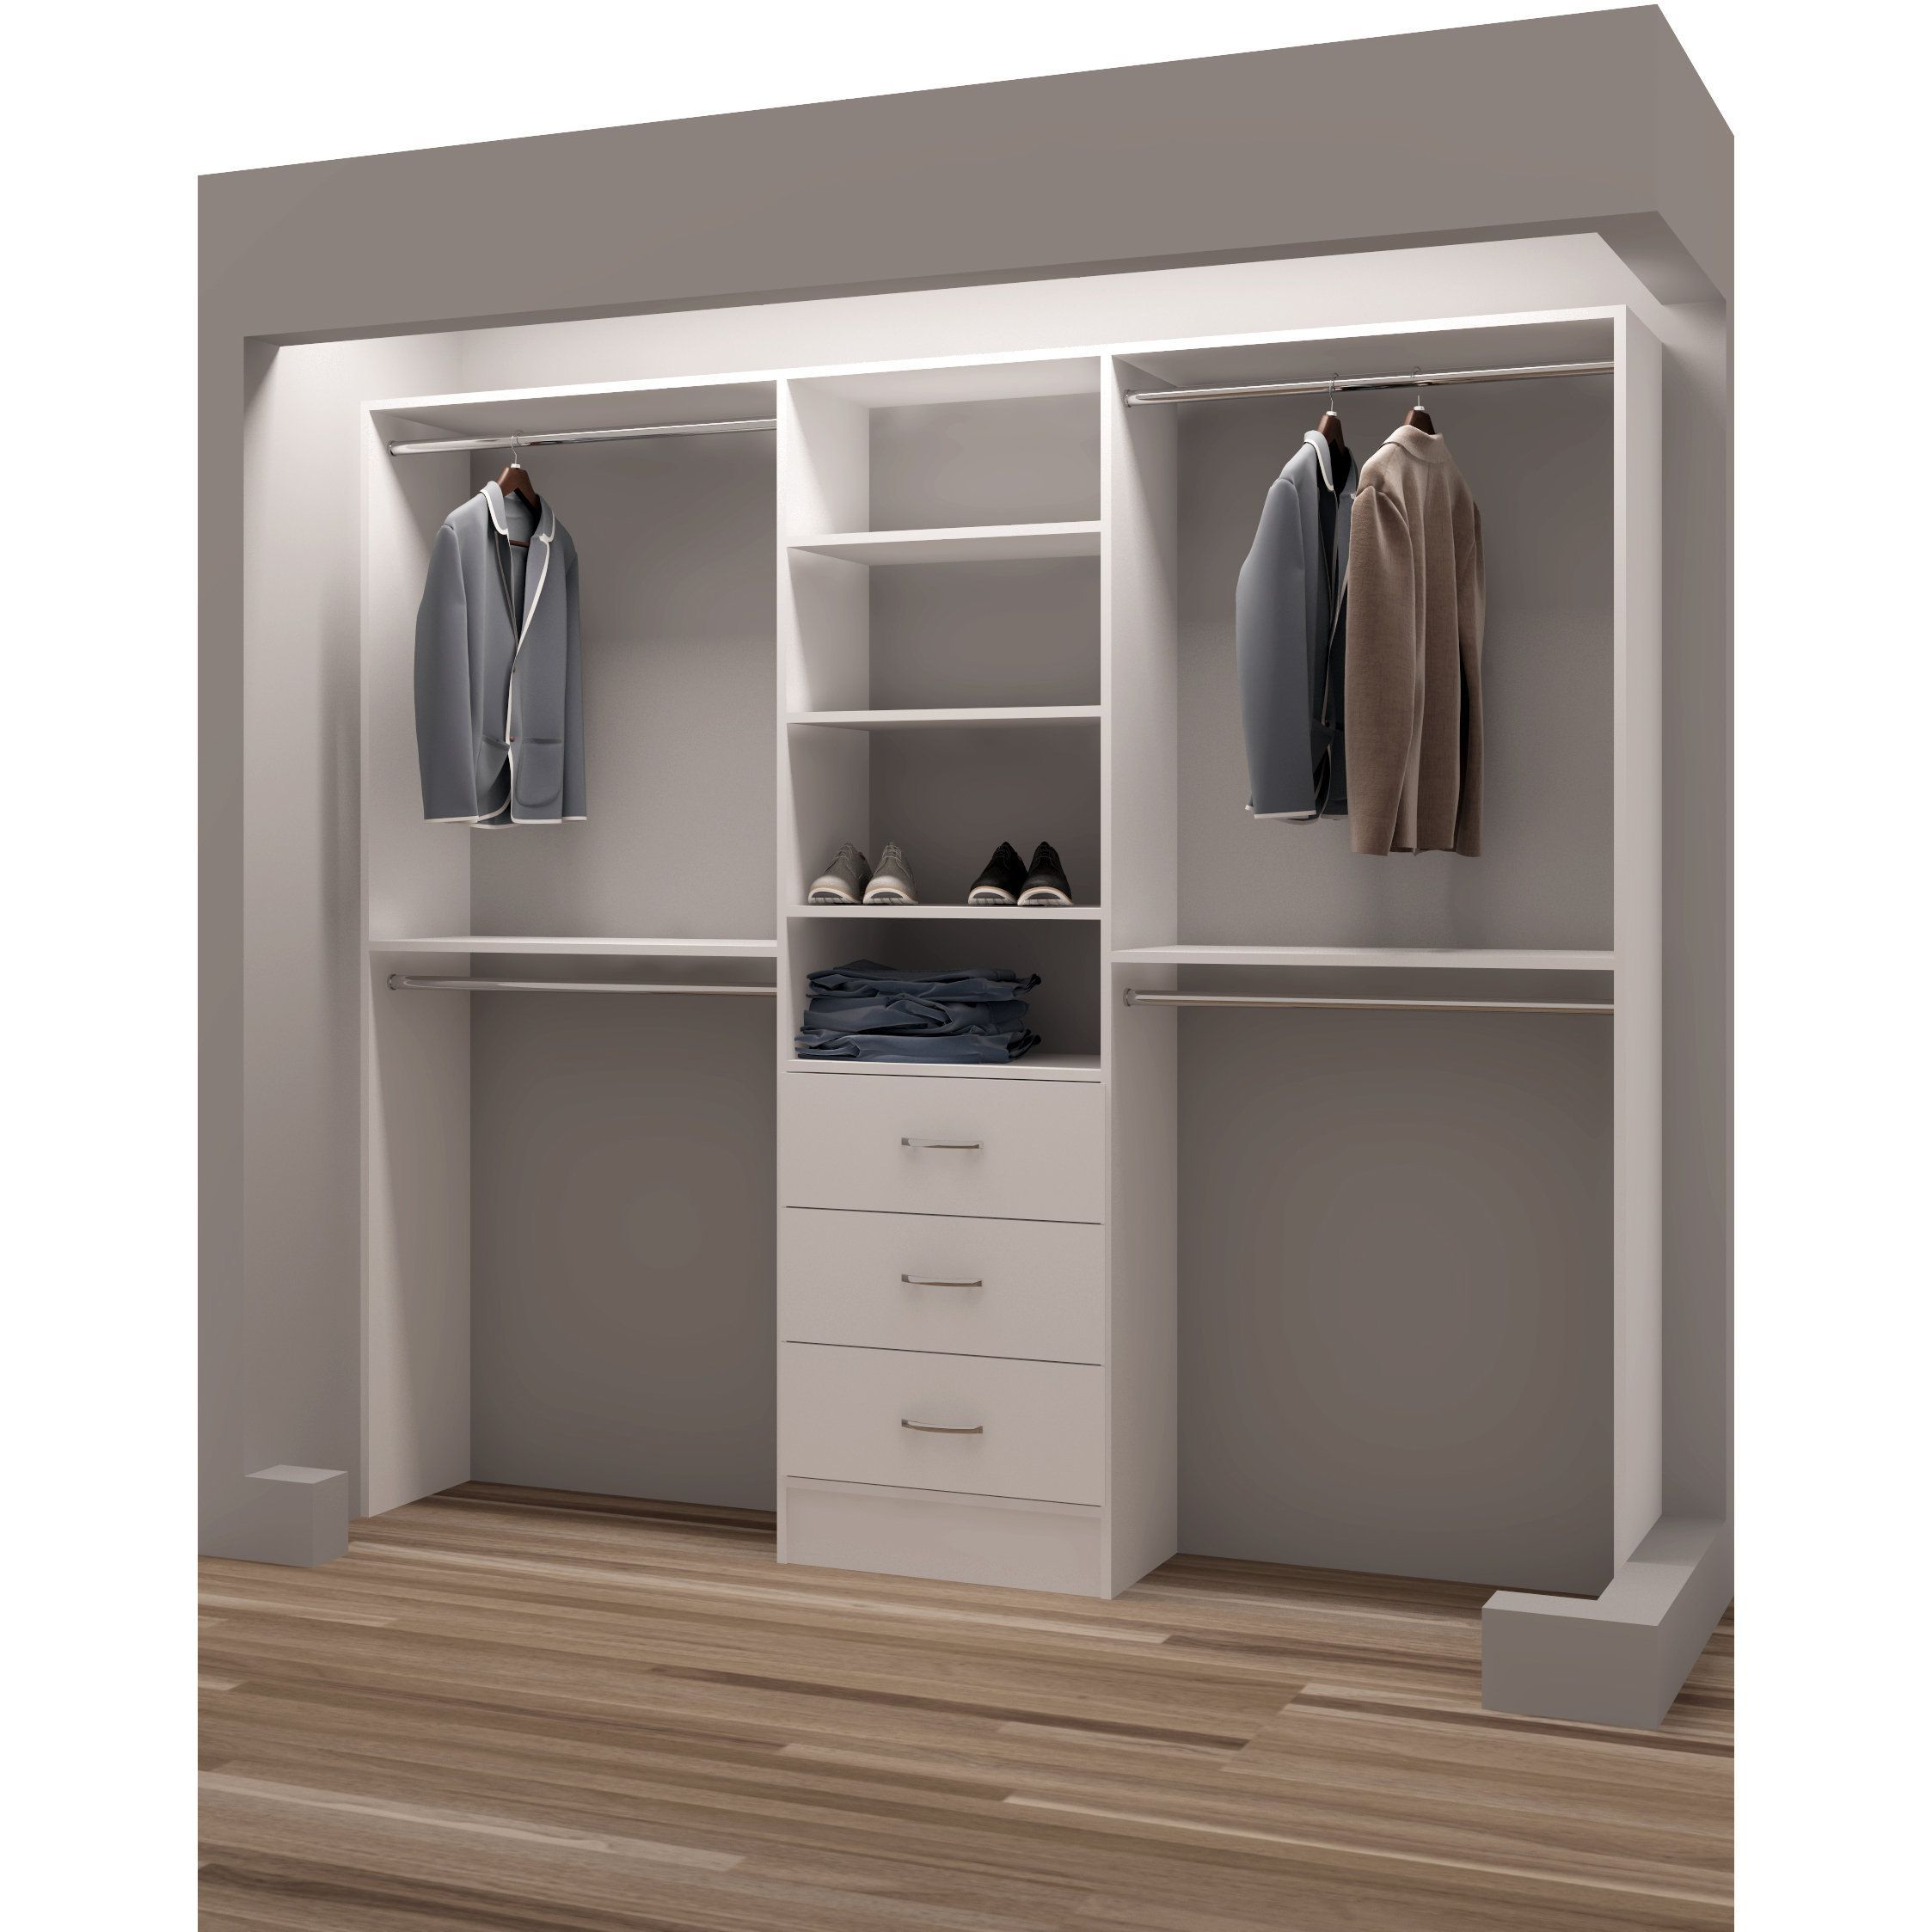 Closet Shelves Tidysquares Classic Wood 87 Inch Reach In Closet Organizer